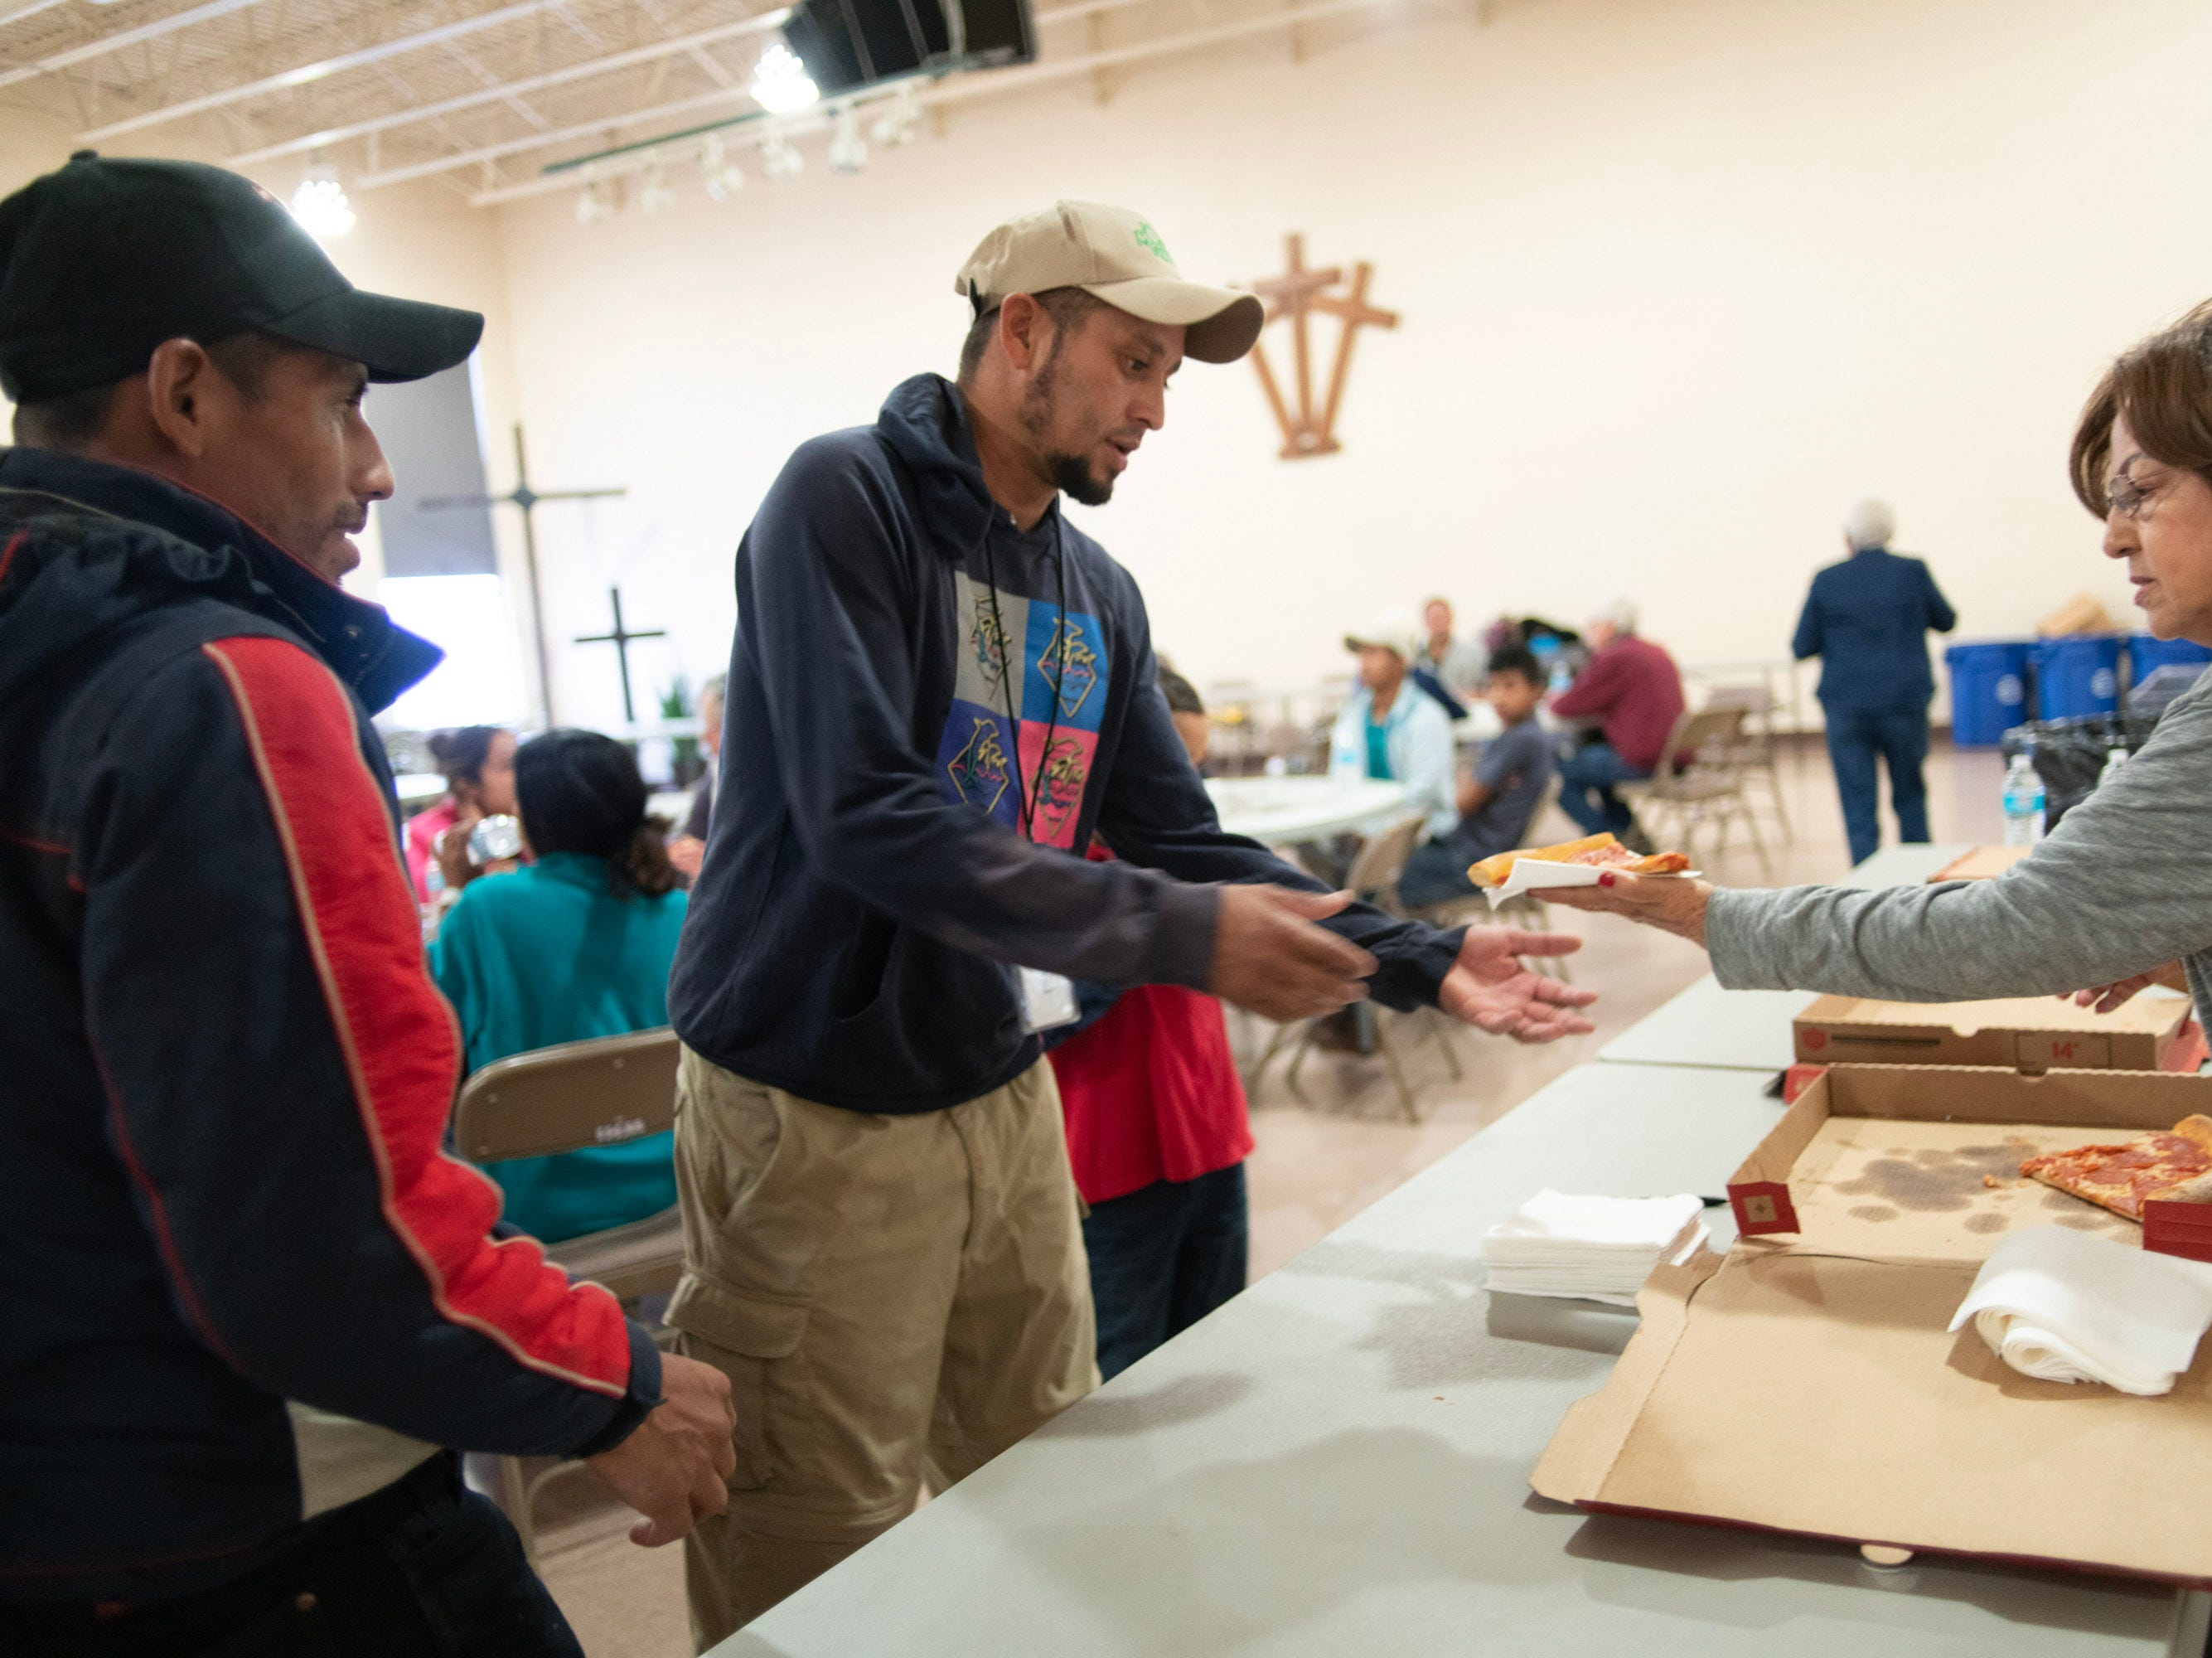 A volunteer at a migrant shelter in Doña Ana County serves pizza to immigrants just arriving from ICE detention.